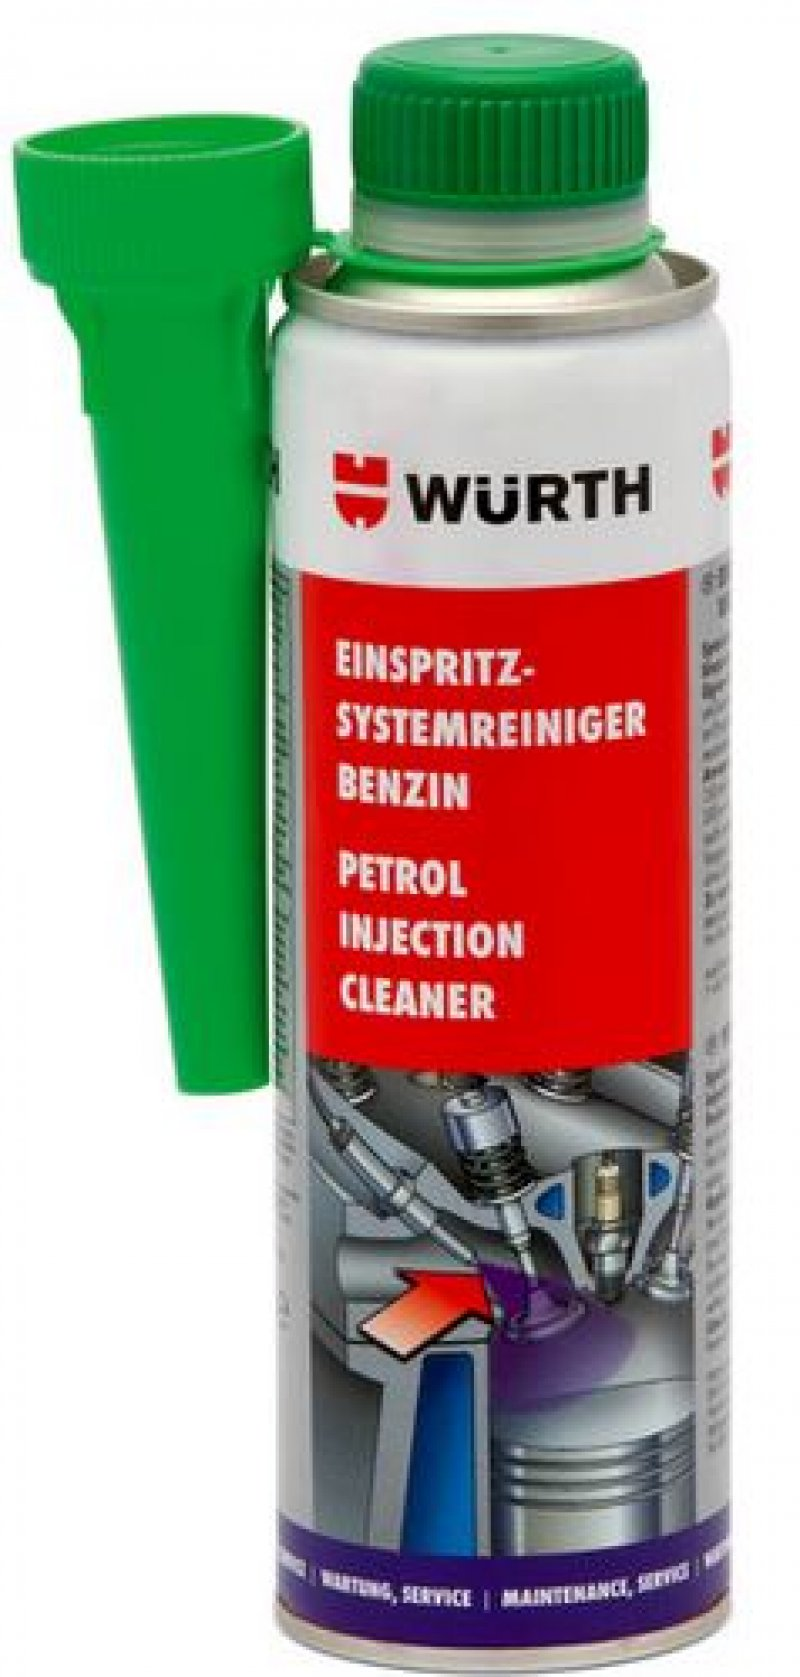 Wurth Service Supply : Petrol injection system cleaner